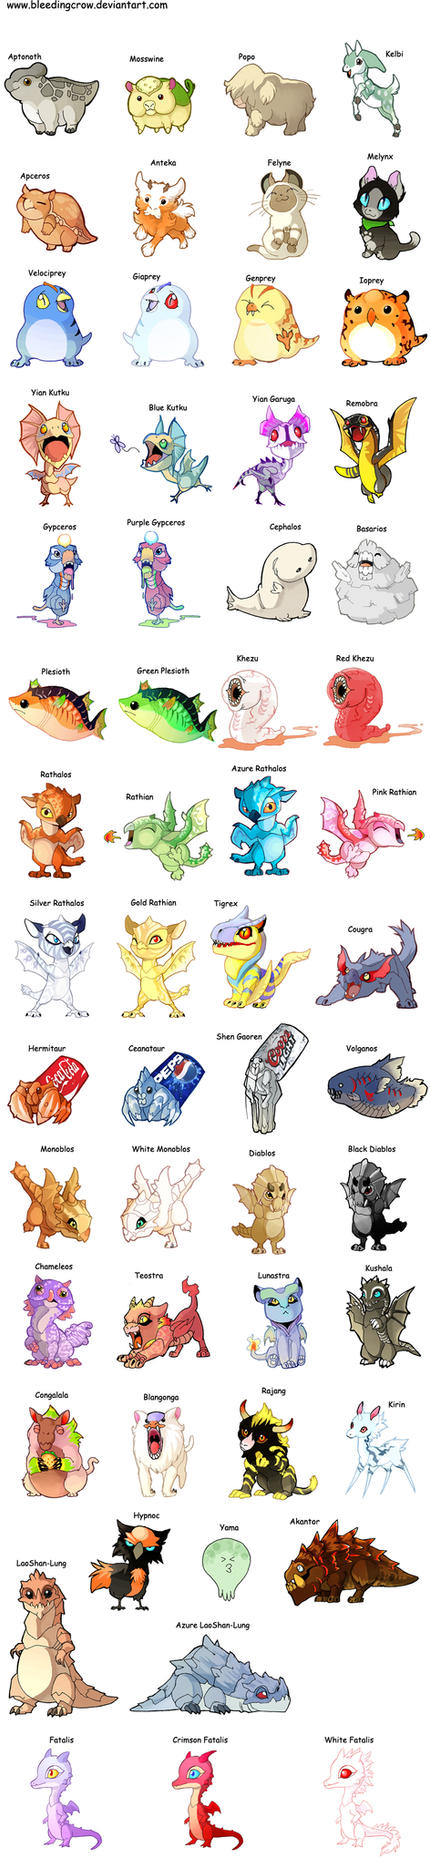 Baby Monsters by macawnivore